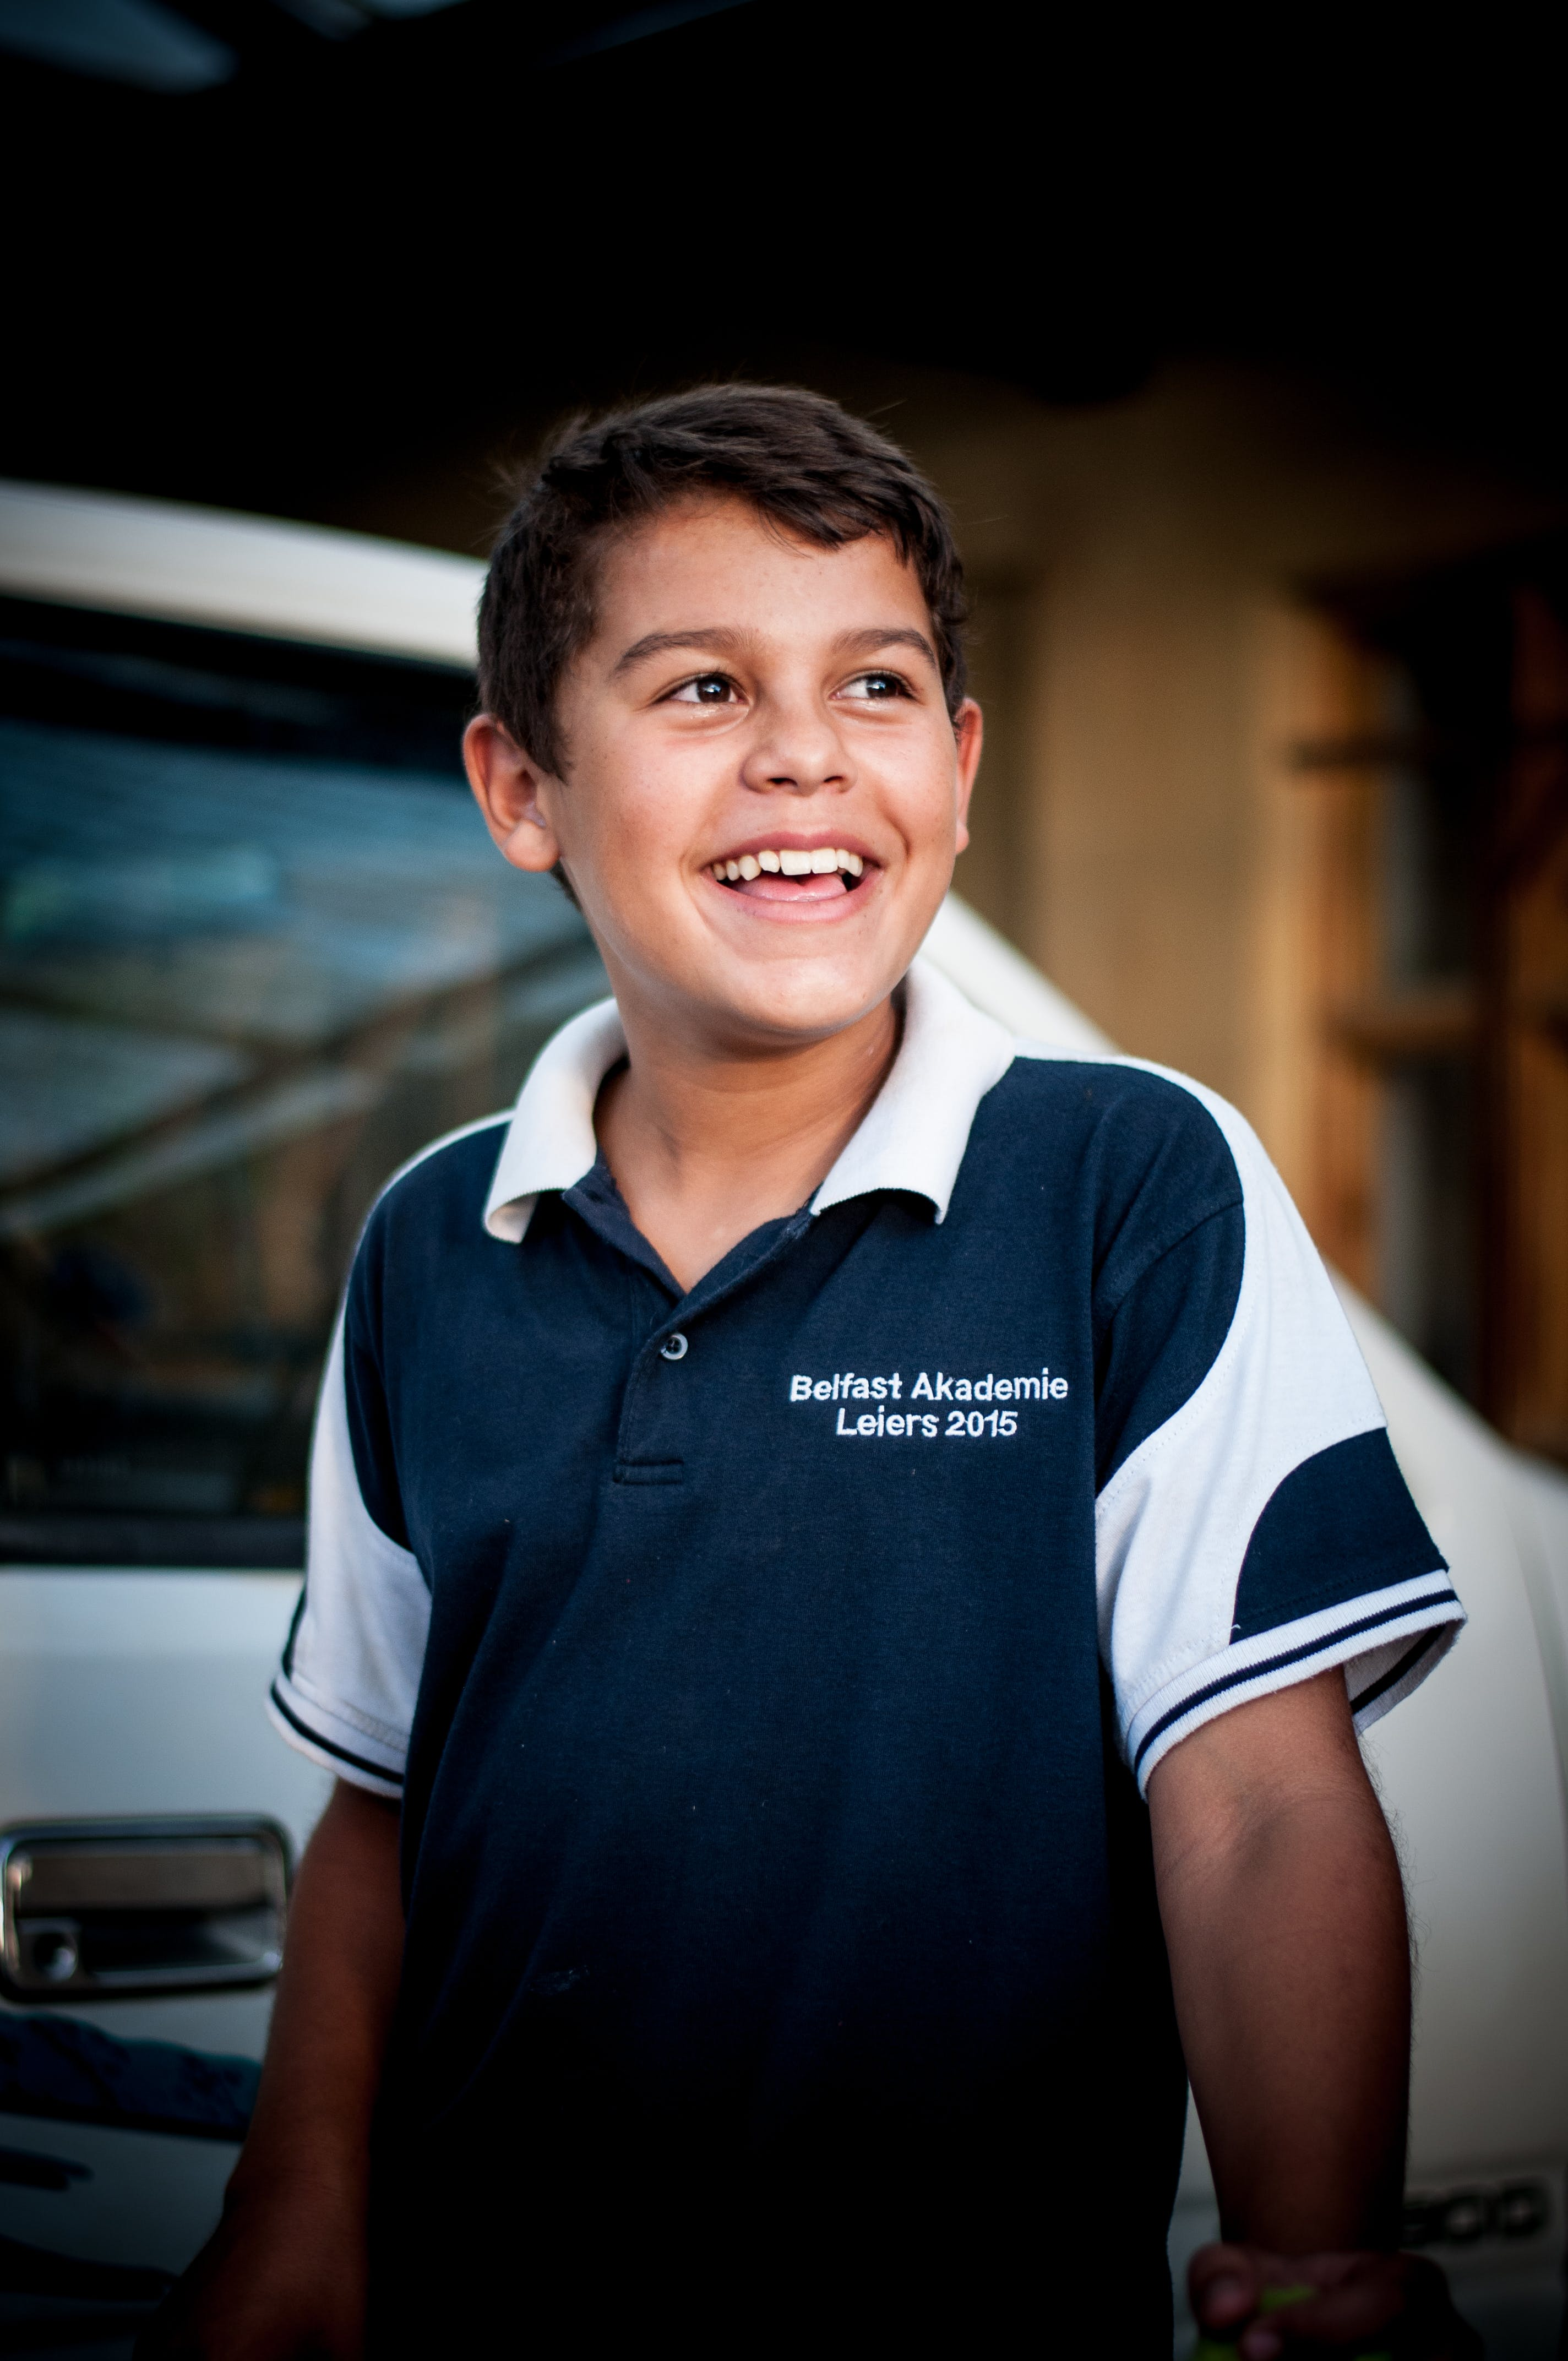 Kid Wearing Blue and White Polo Shirt